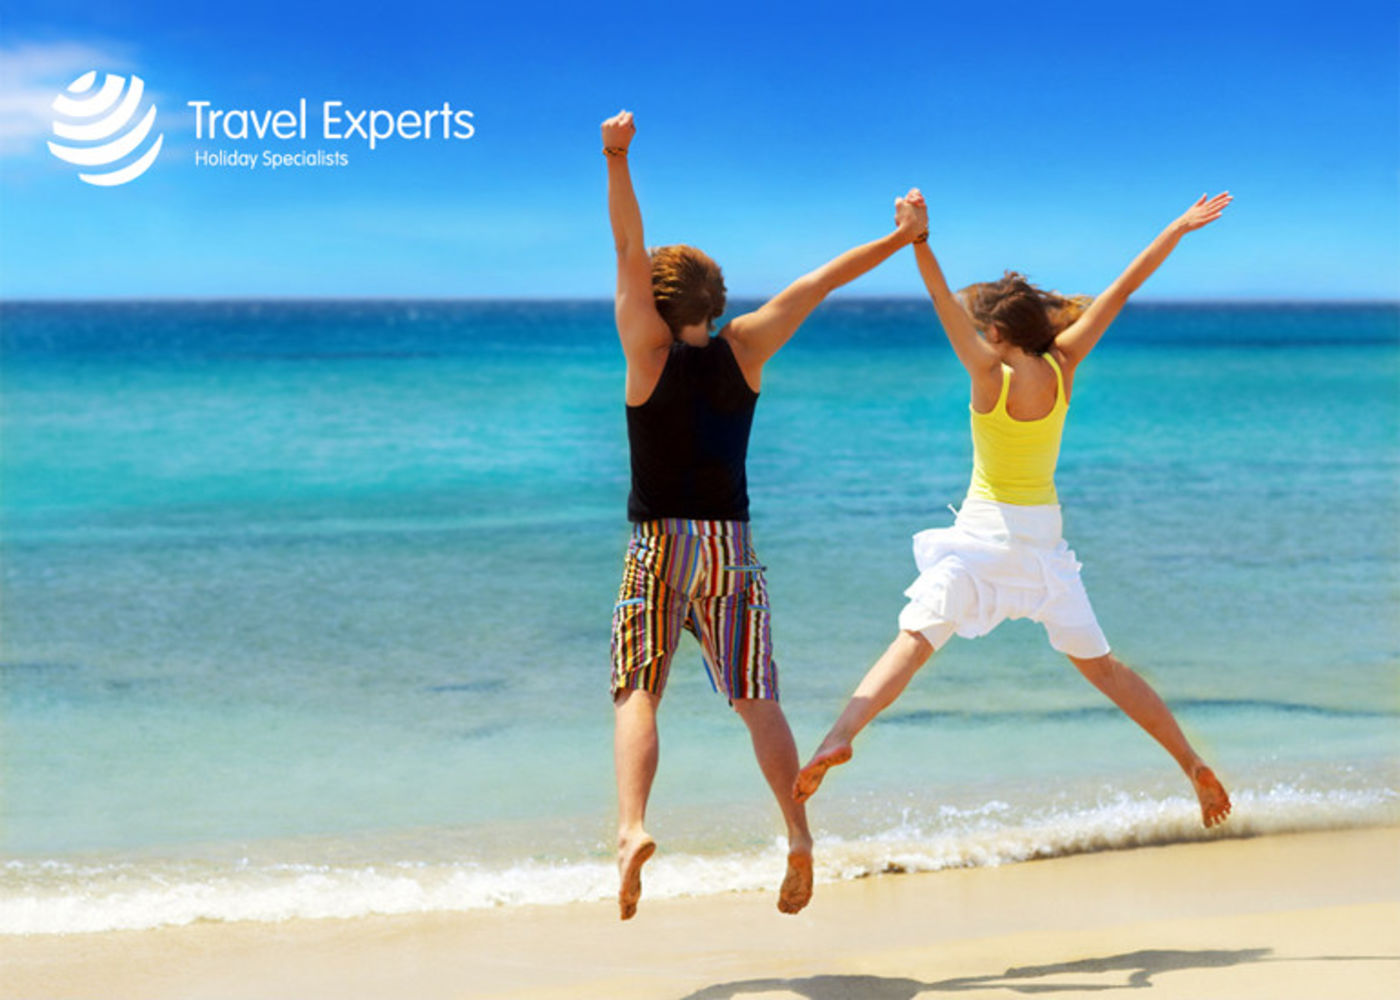 Travel Experts Welcome